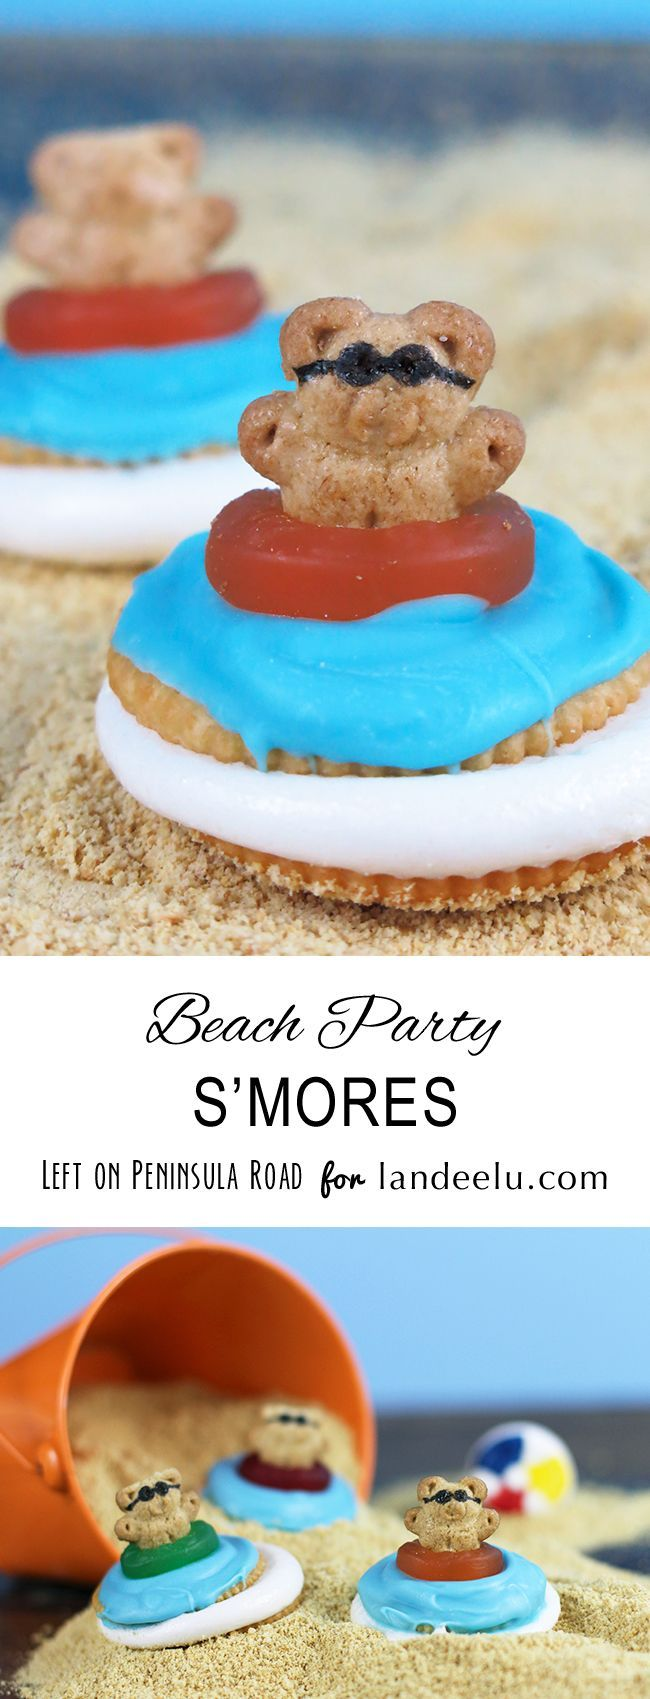 323 best Desserts For Kids Party images on Pinterest